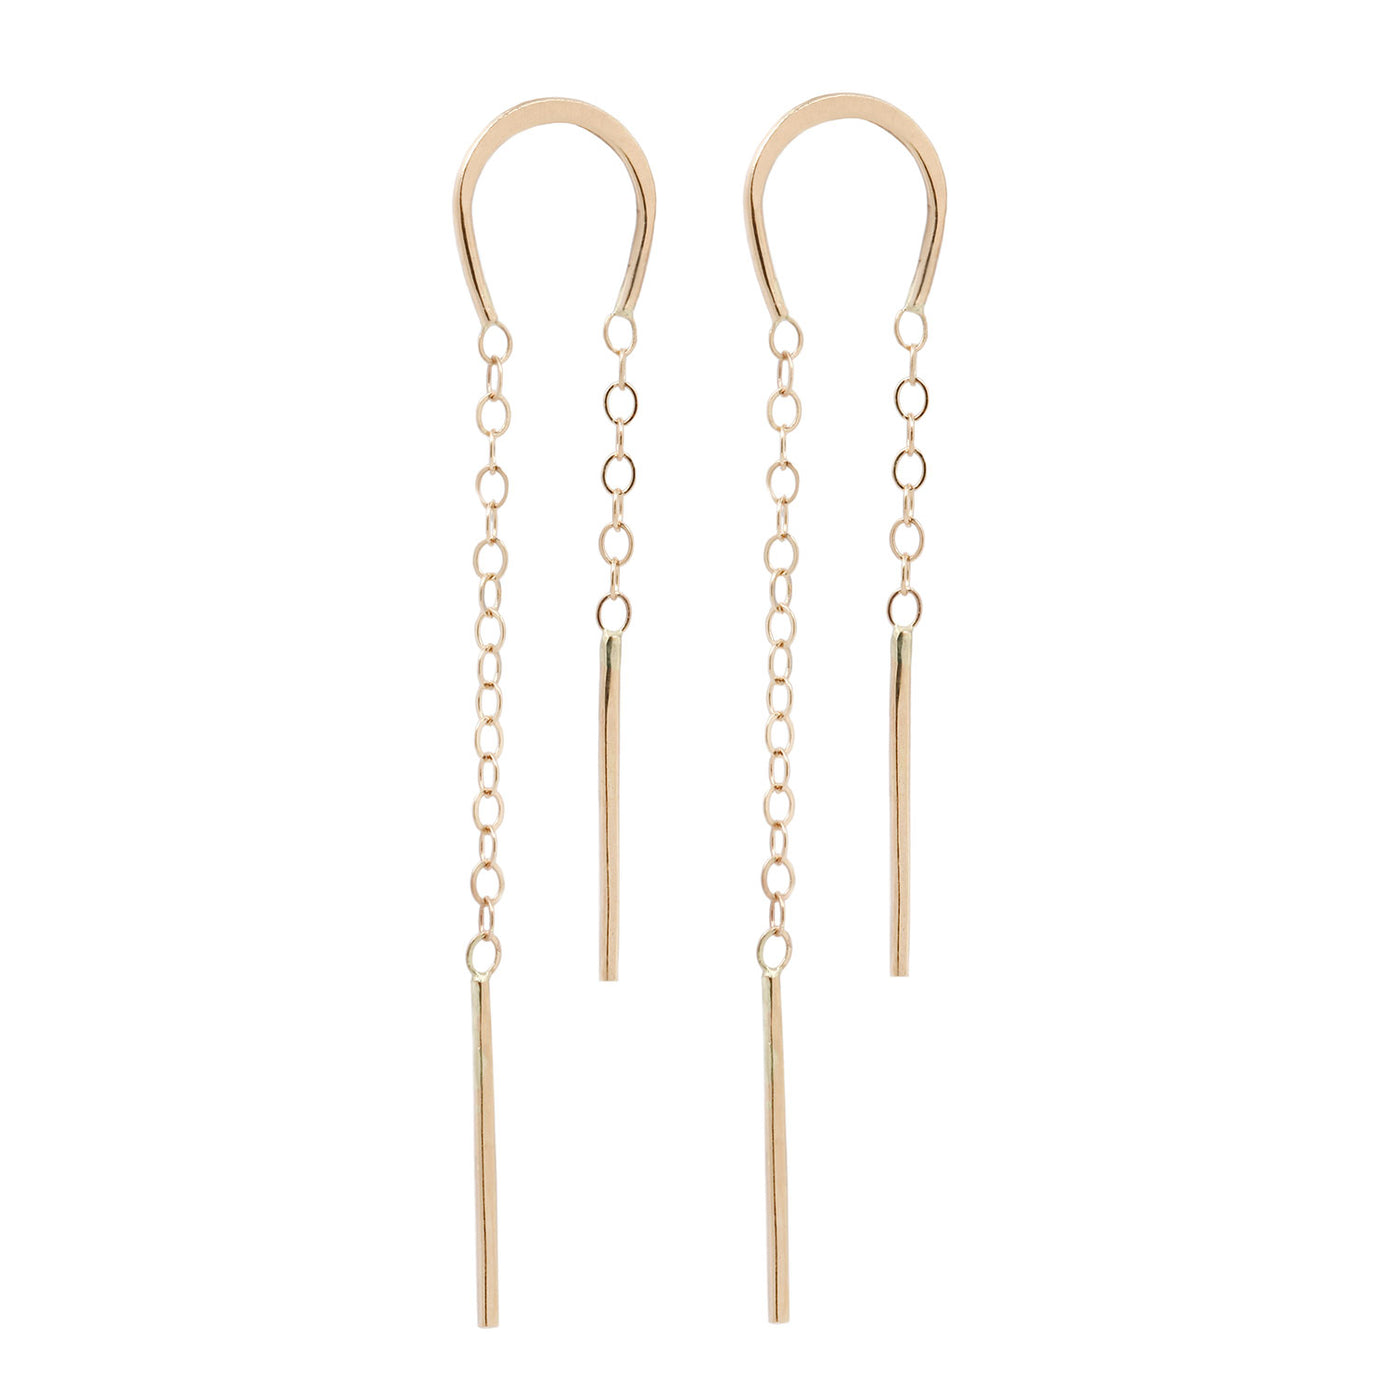 Melissa Joy Manning Horseshoe Chain Threader Earrings